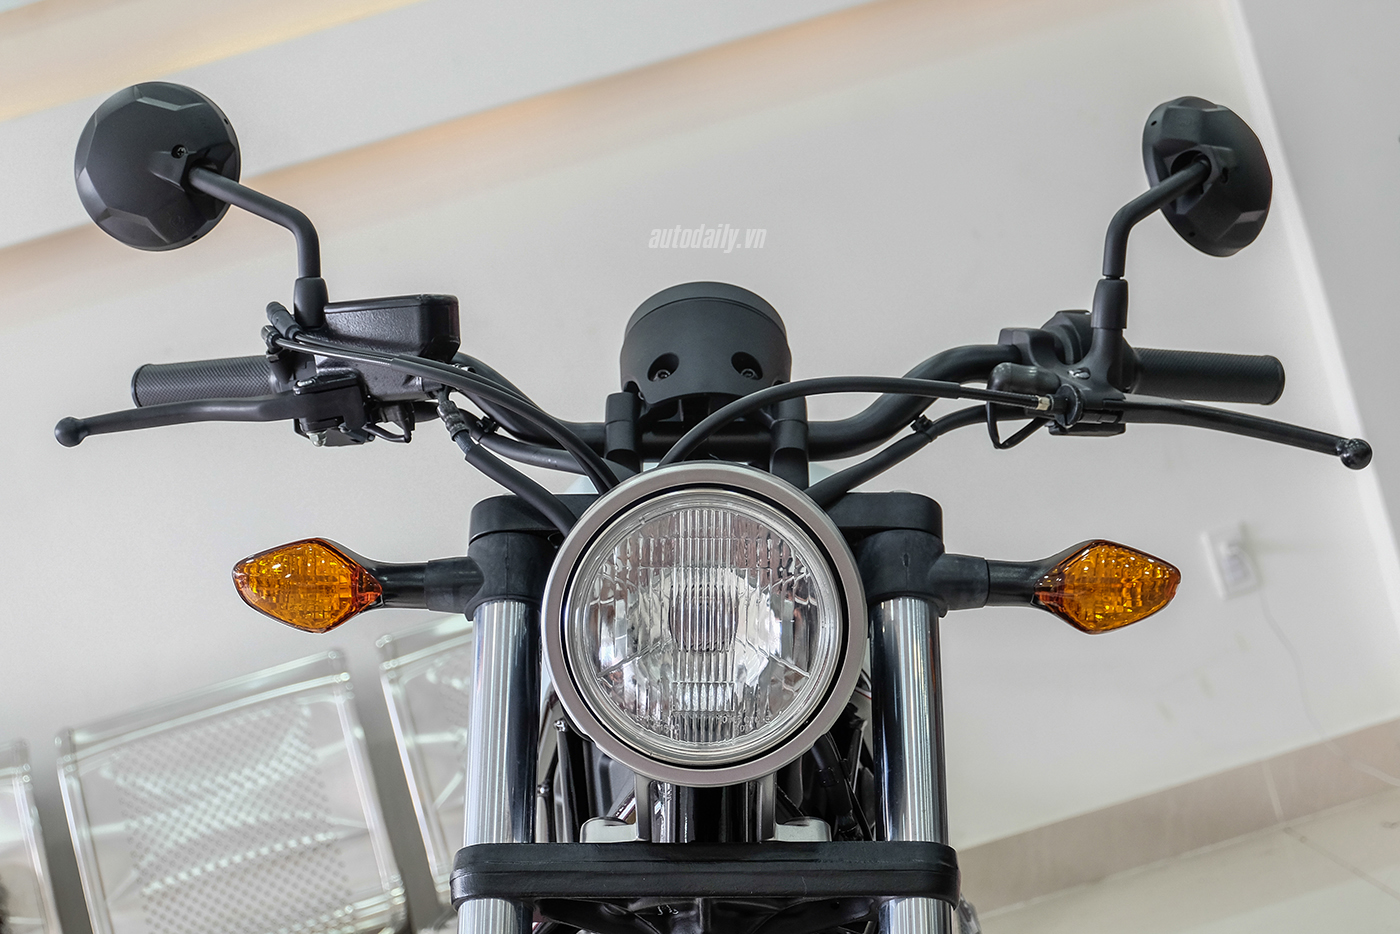 honda-rebel-300-abs-2017-5.jpg